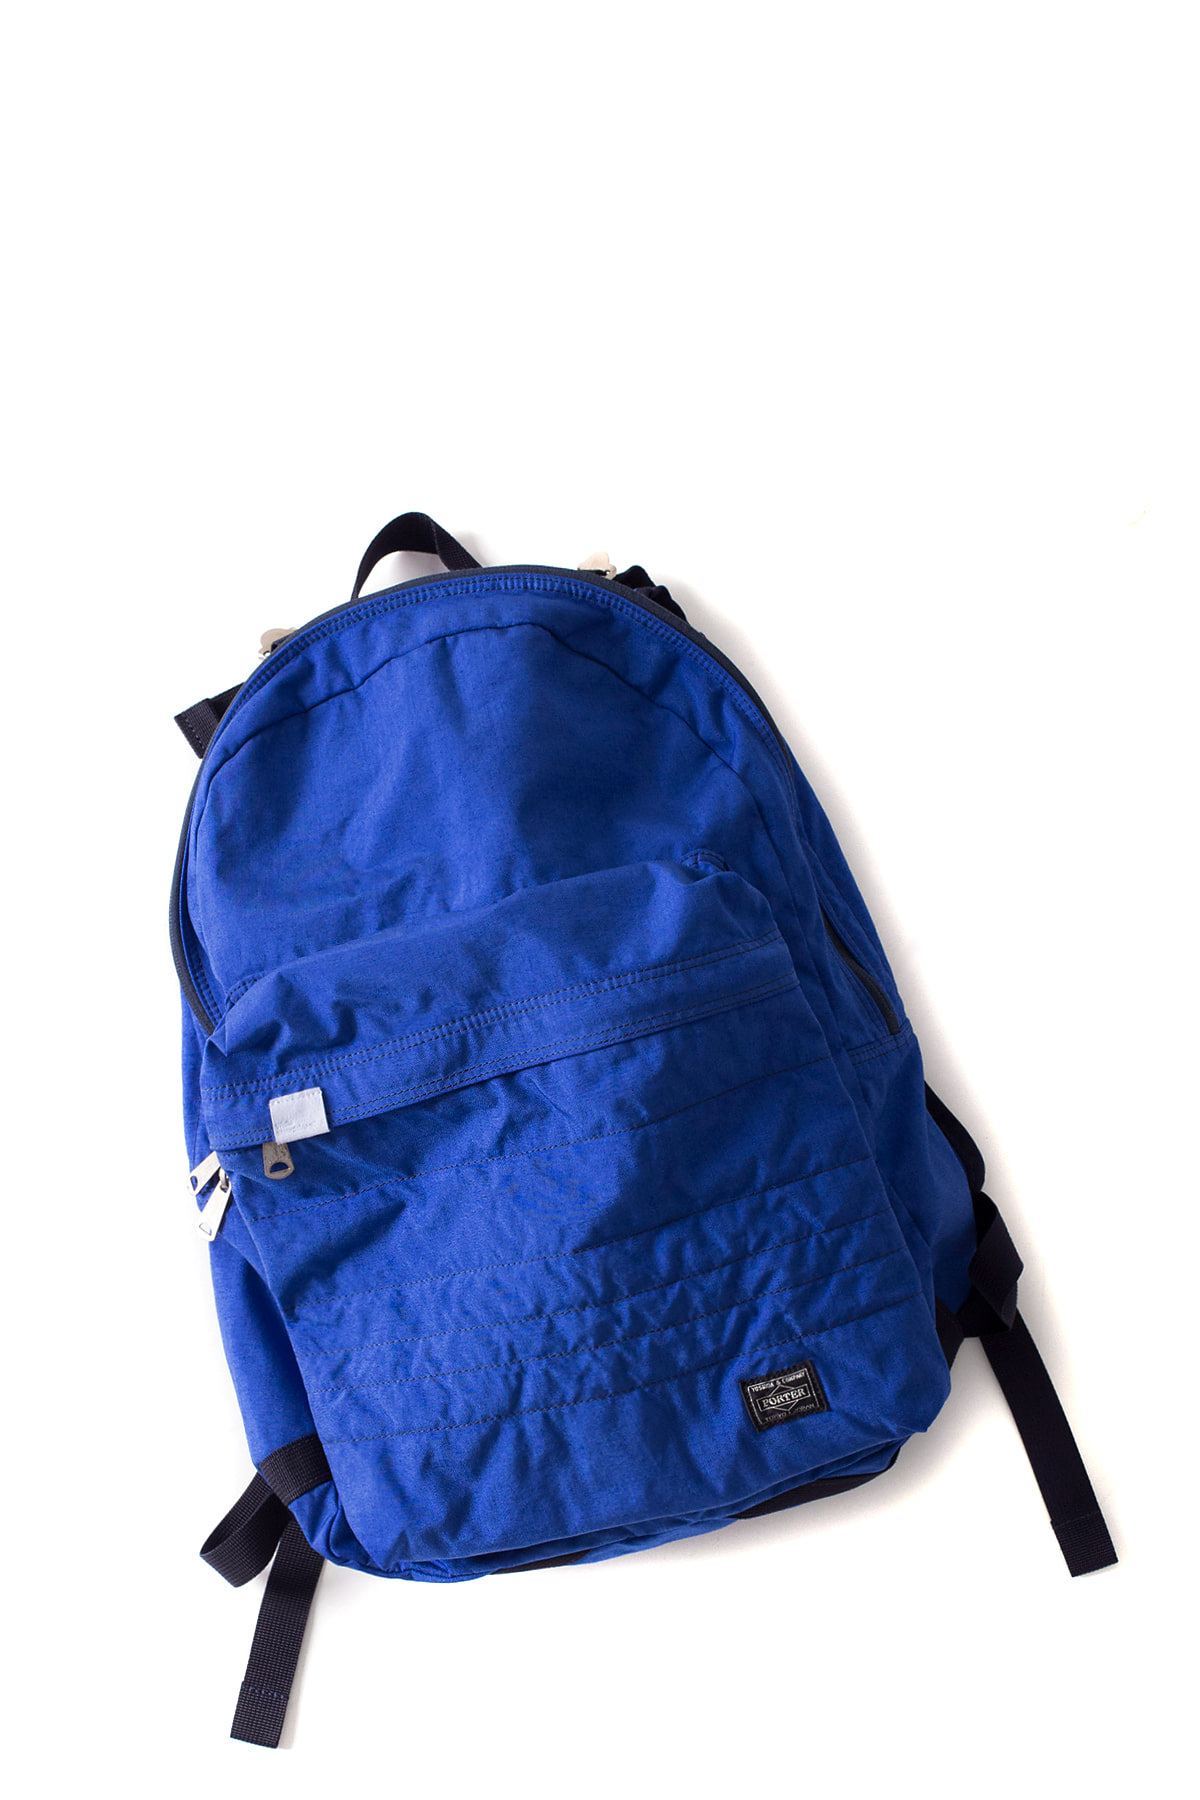 WHITE MOUNTAINEERING : WM x PORTER Garment Dyed Backpack (Blue)